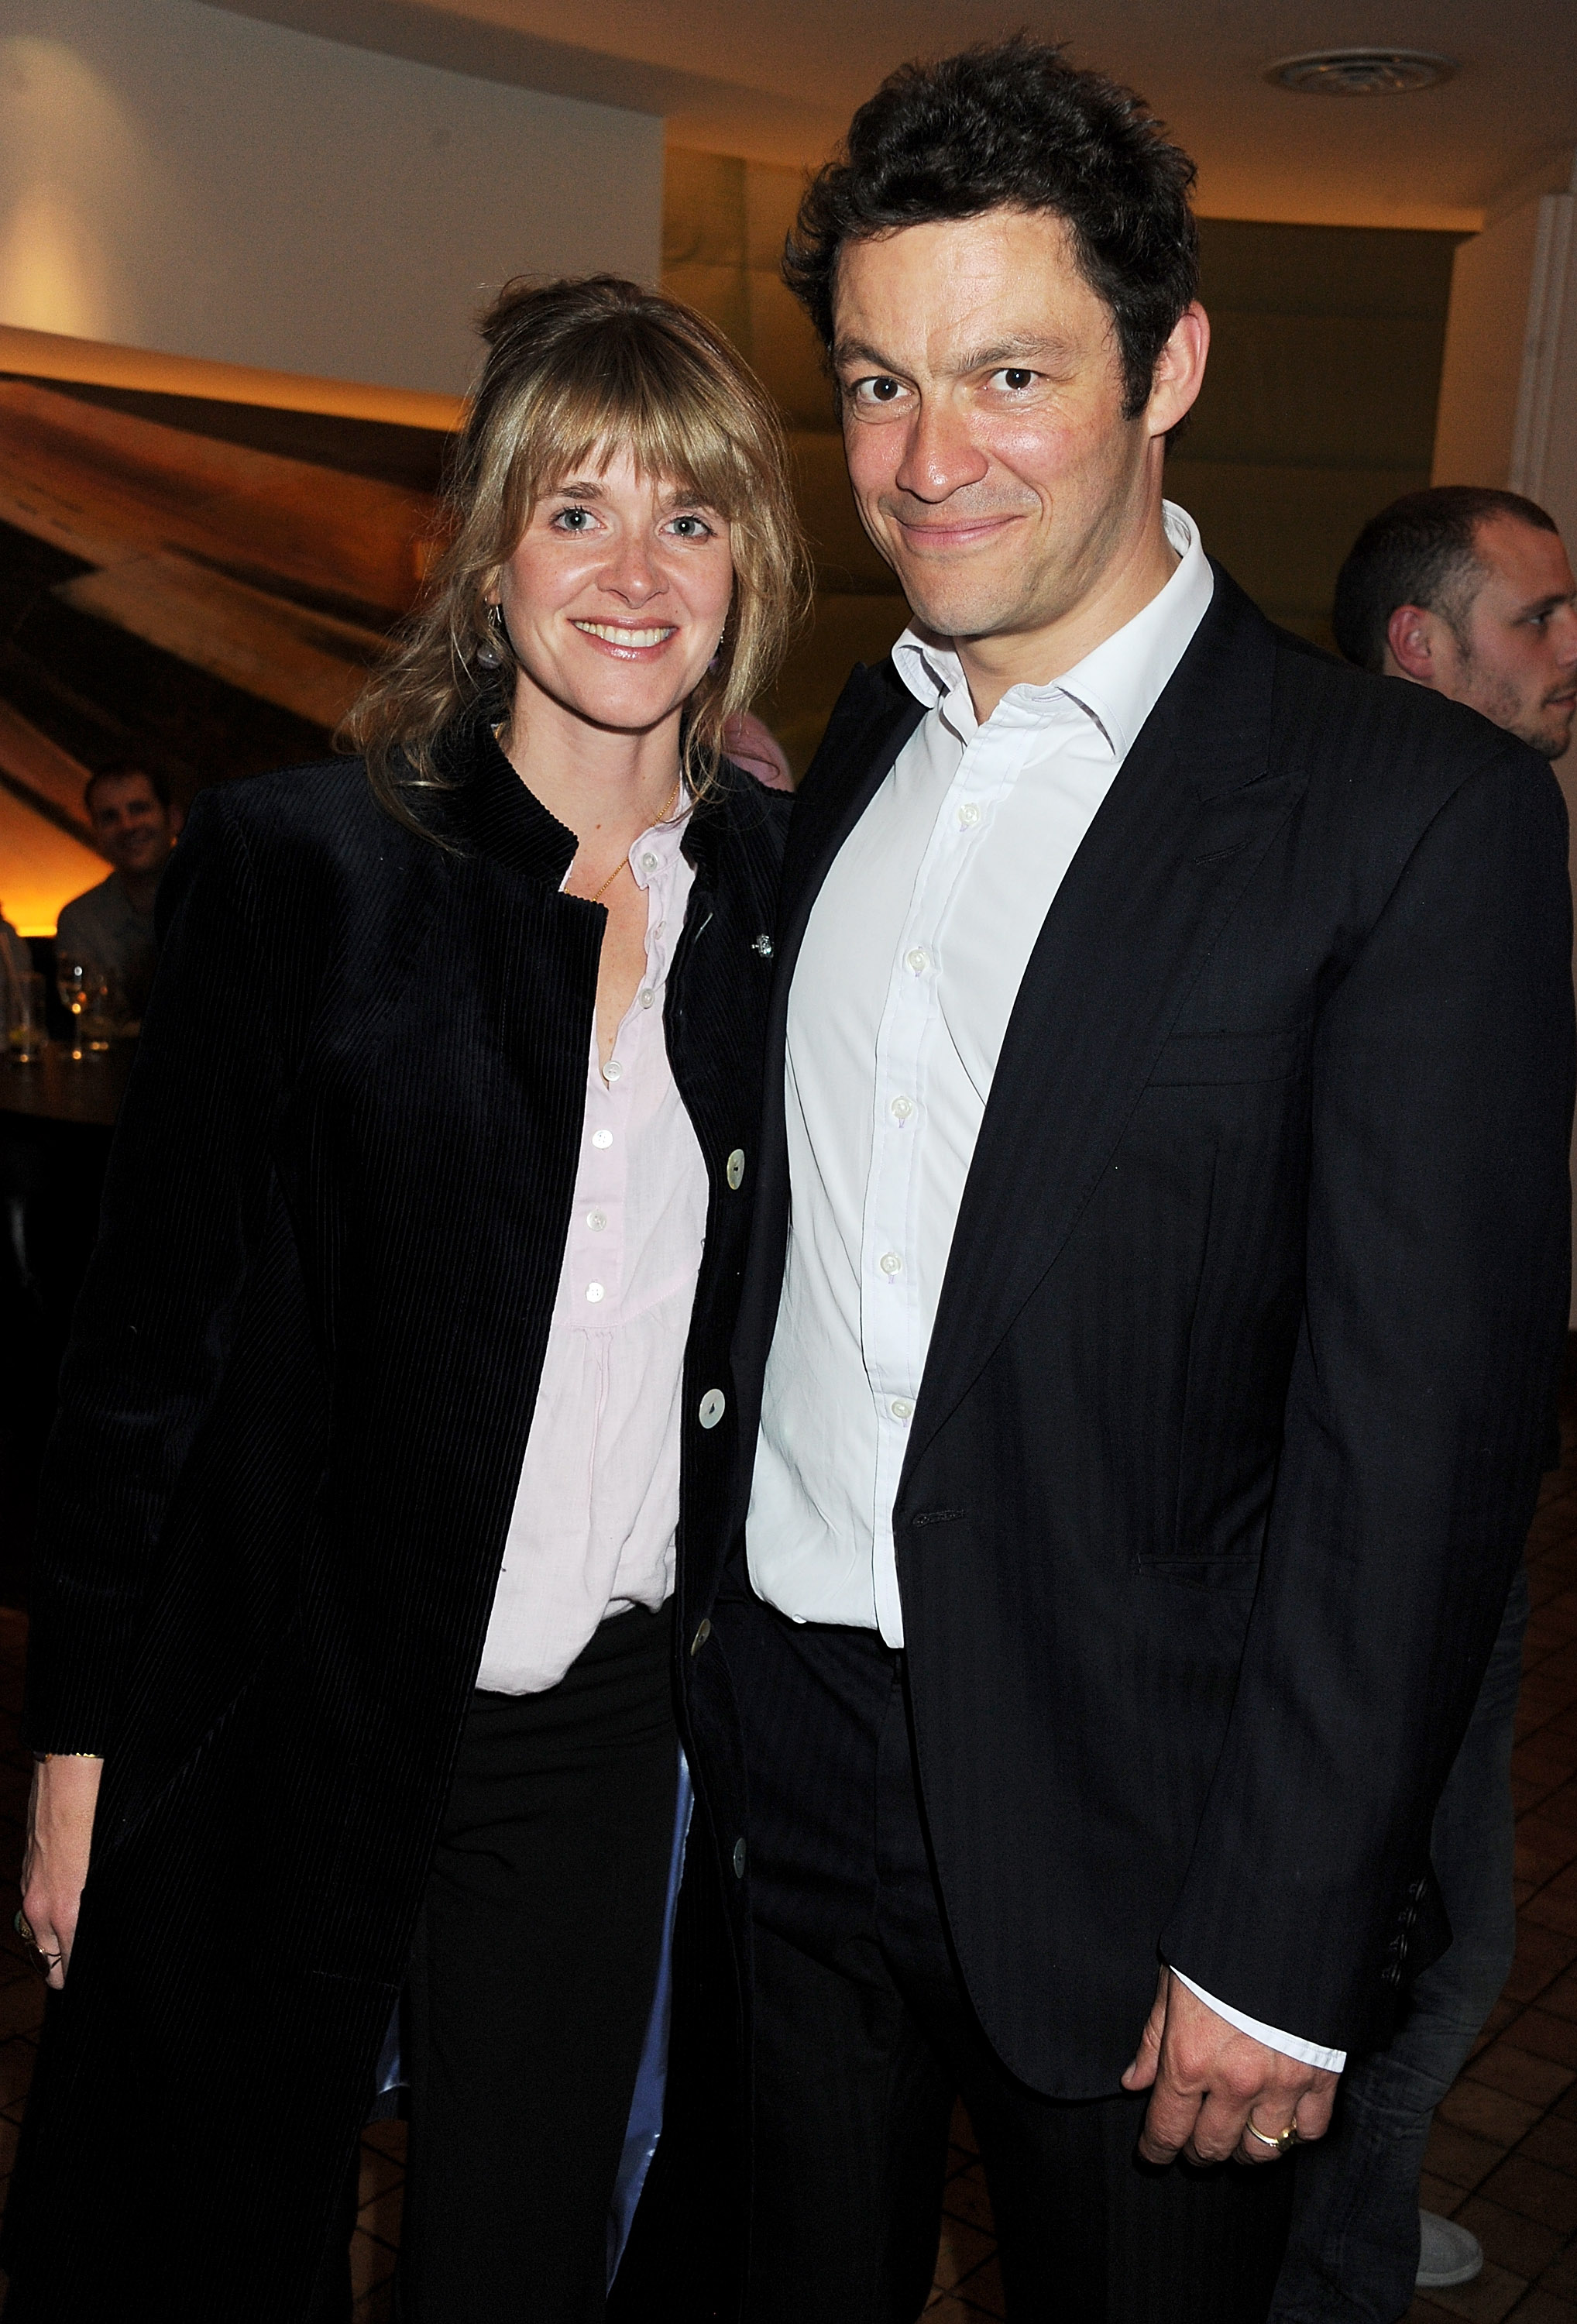 Catherine FitzGerald and Dominic West attends an after party following press night of the new West End production of Simon Gray's Butley at Axis at One Aldwych on June 6, 2011 in London, England.